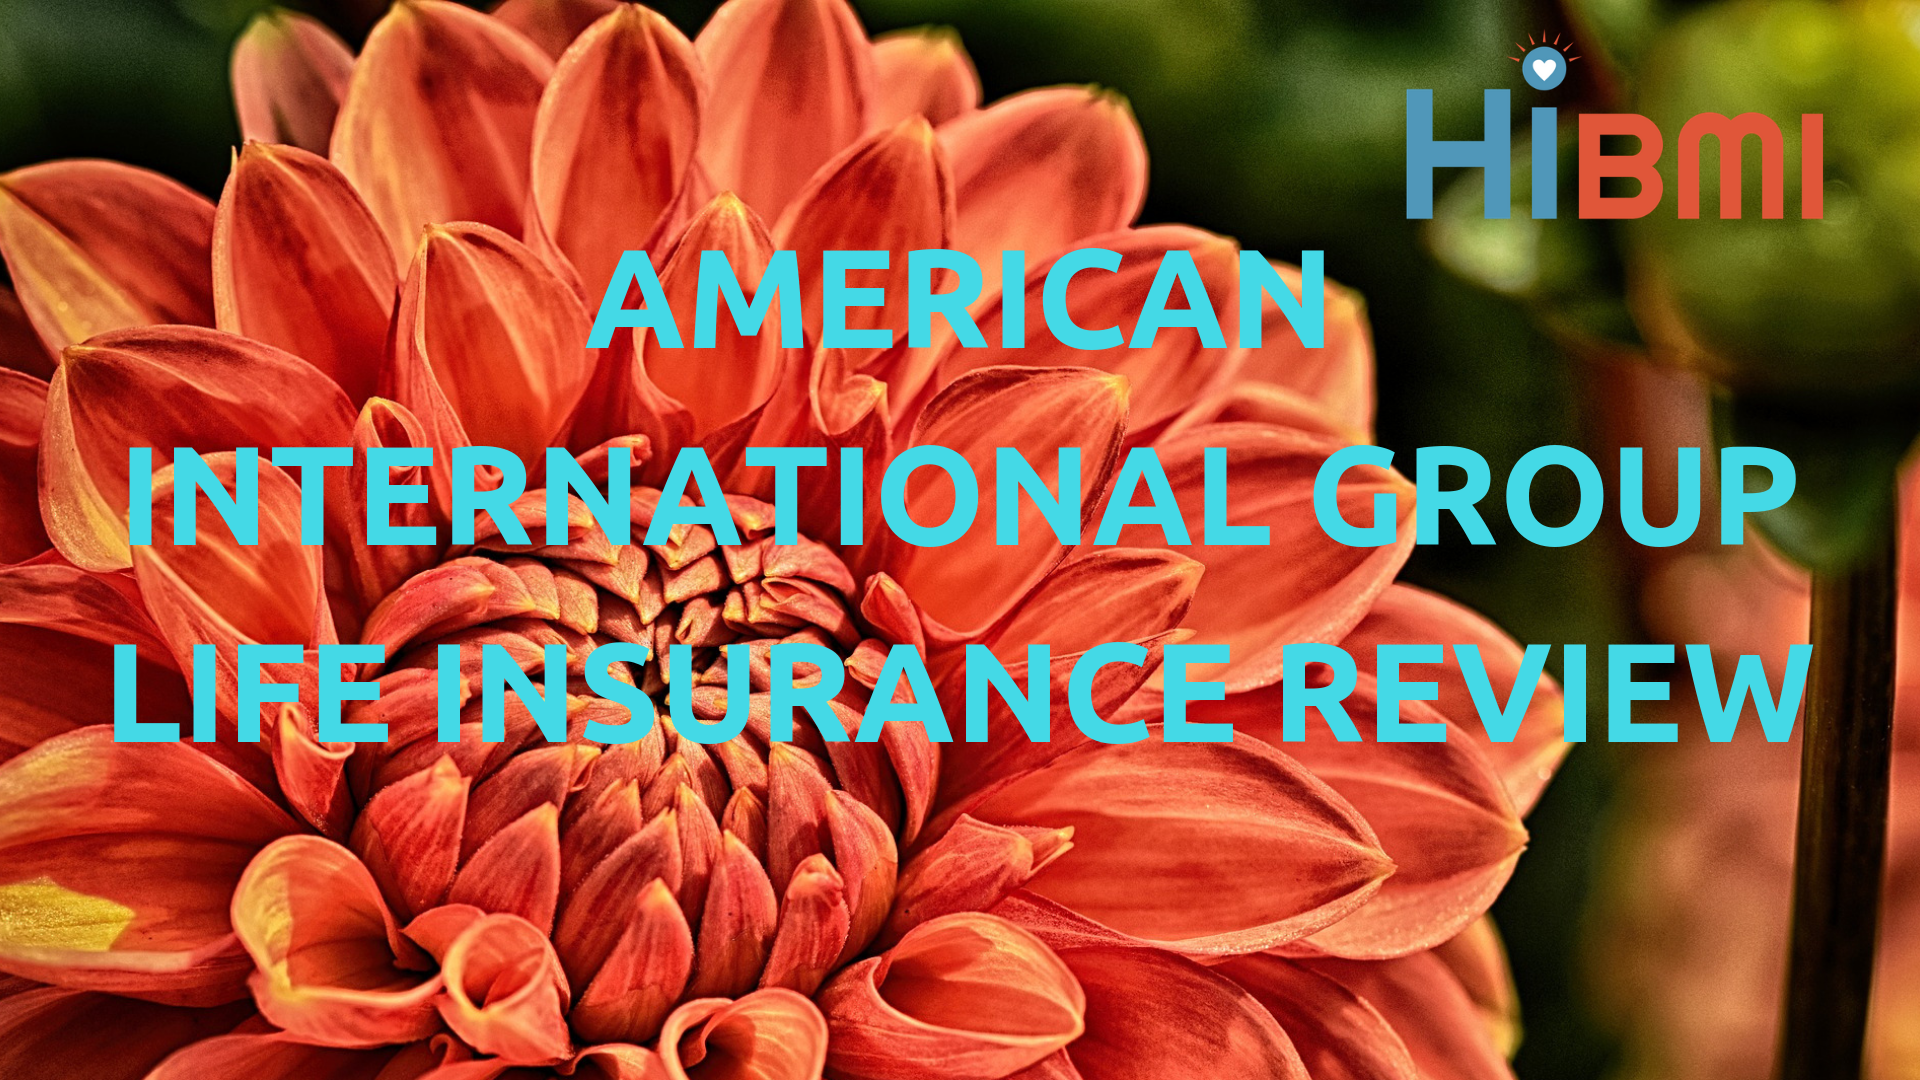 american international group life insurance review, term life insurance, universal life insurance, whole life insurance, get a FREE quote